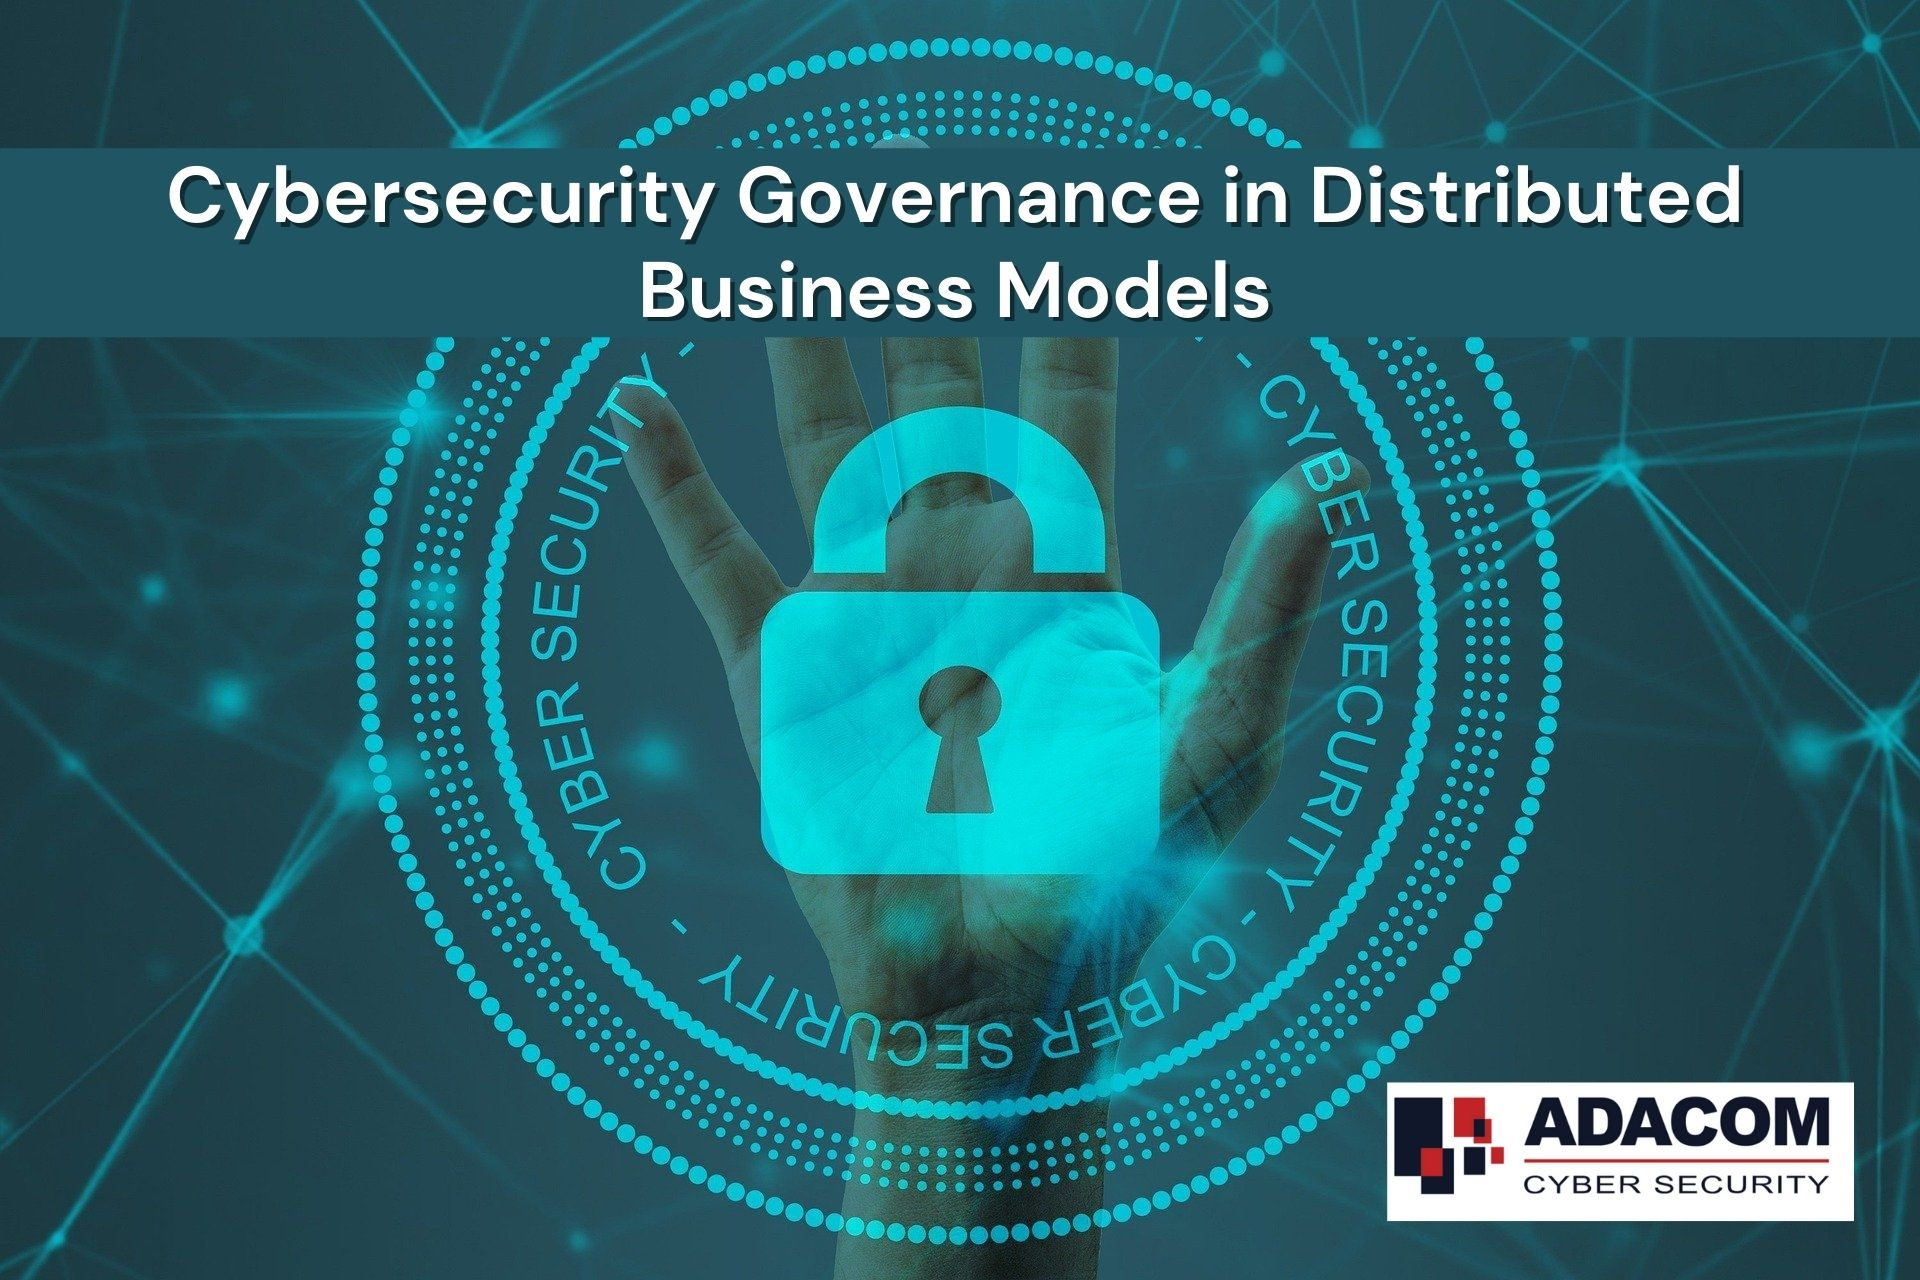 Cybersecurity Governance in Distributed Business Models 1